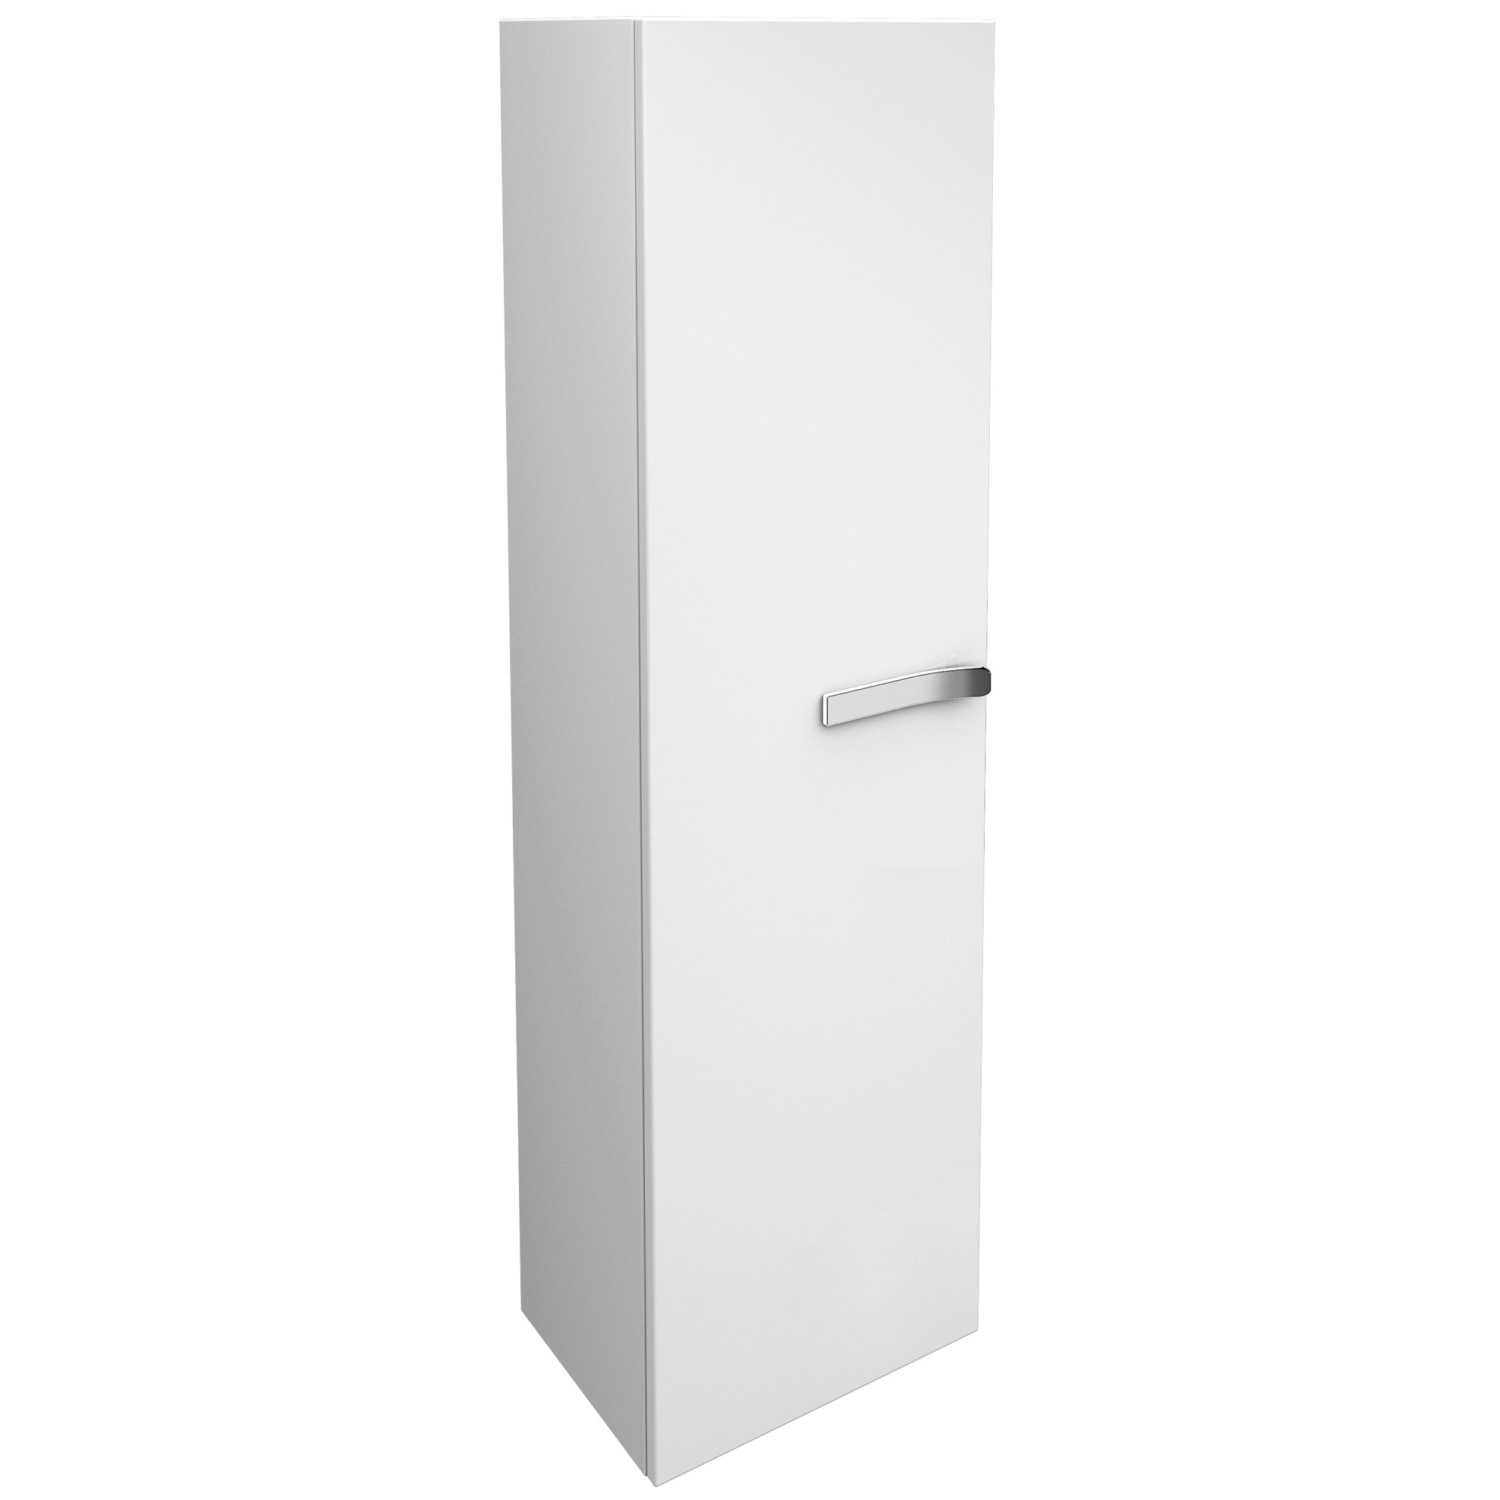 Ideal standard strada left hand 400mm tall storage unit white for White gloss tall kitchen units